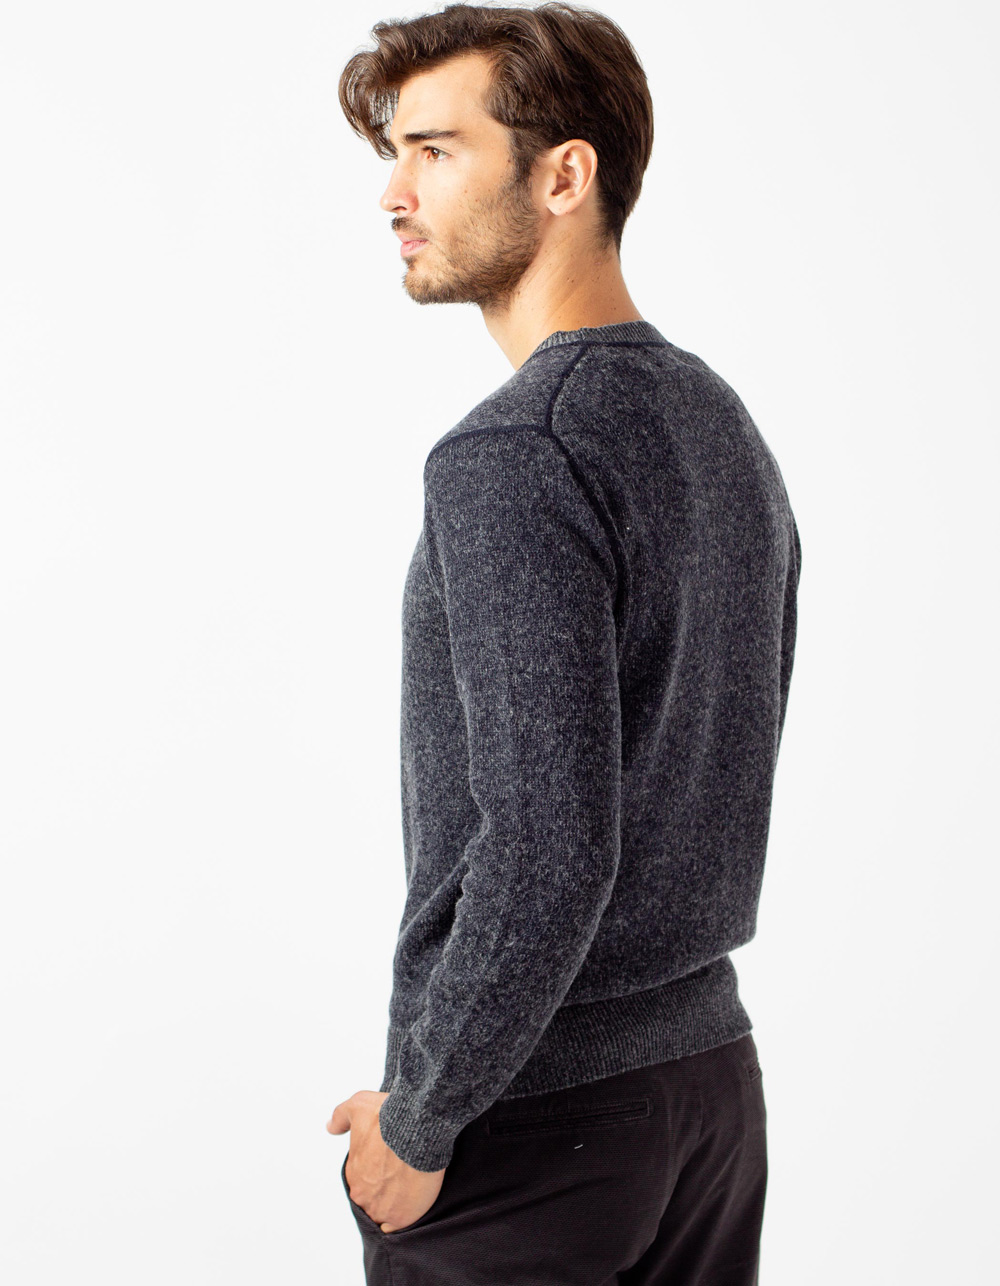 Blue grey round collar jersey - Backside